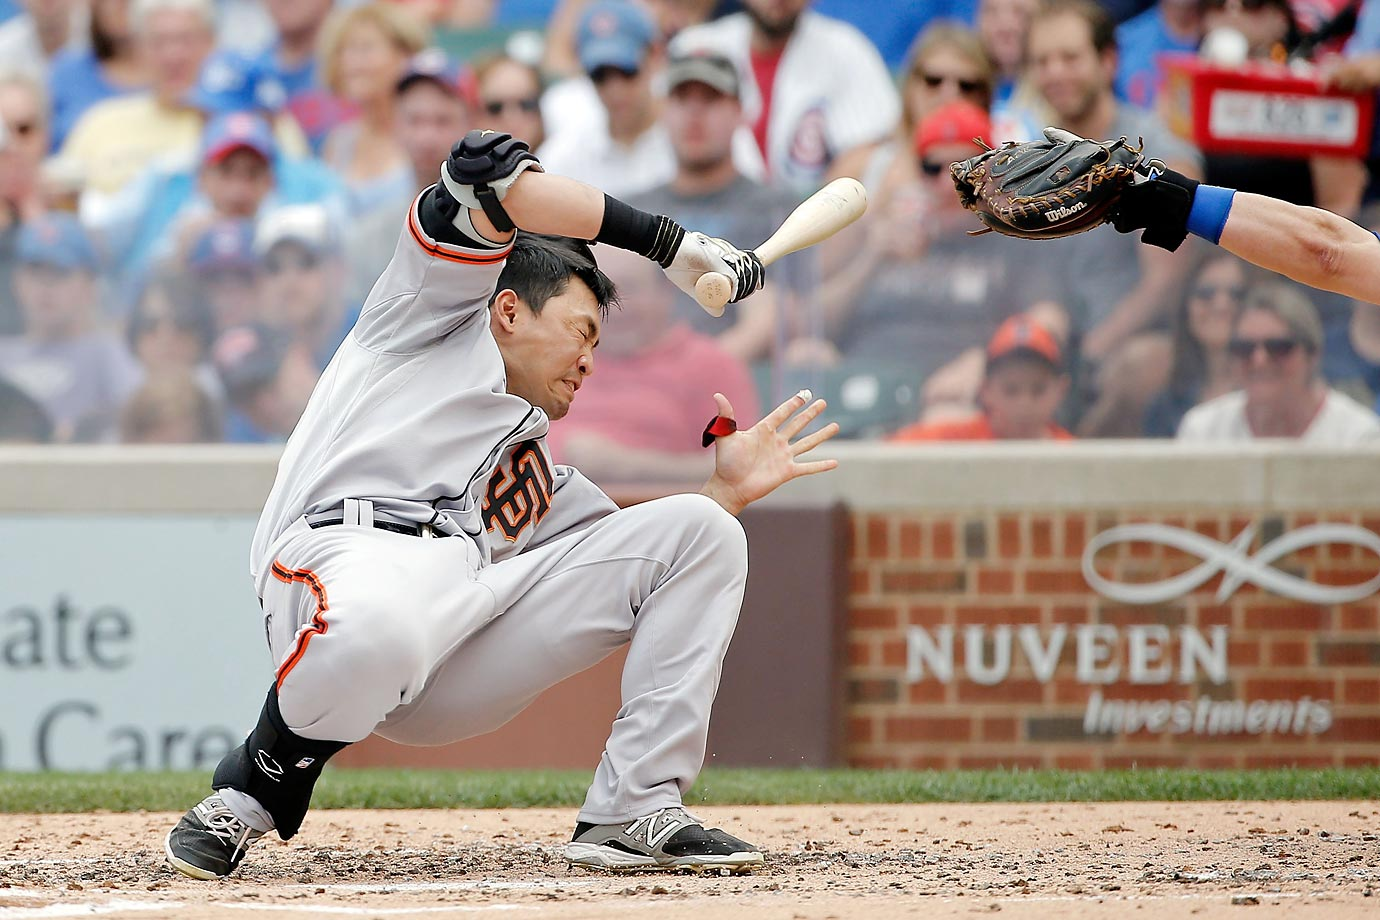 Nori Aoki of the San Francisco Giants is hit in the head by a pitch thrown by Jake Arrieta of the Chicago Cubs.